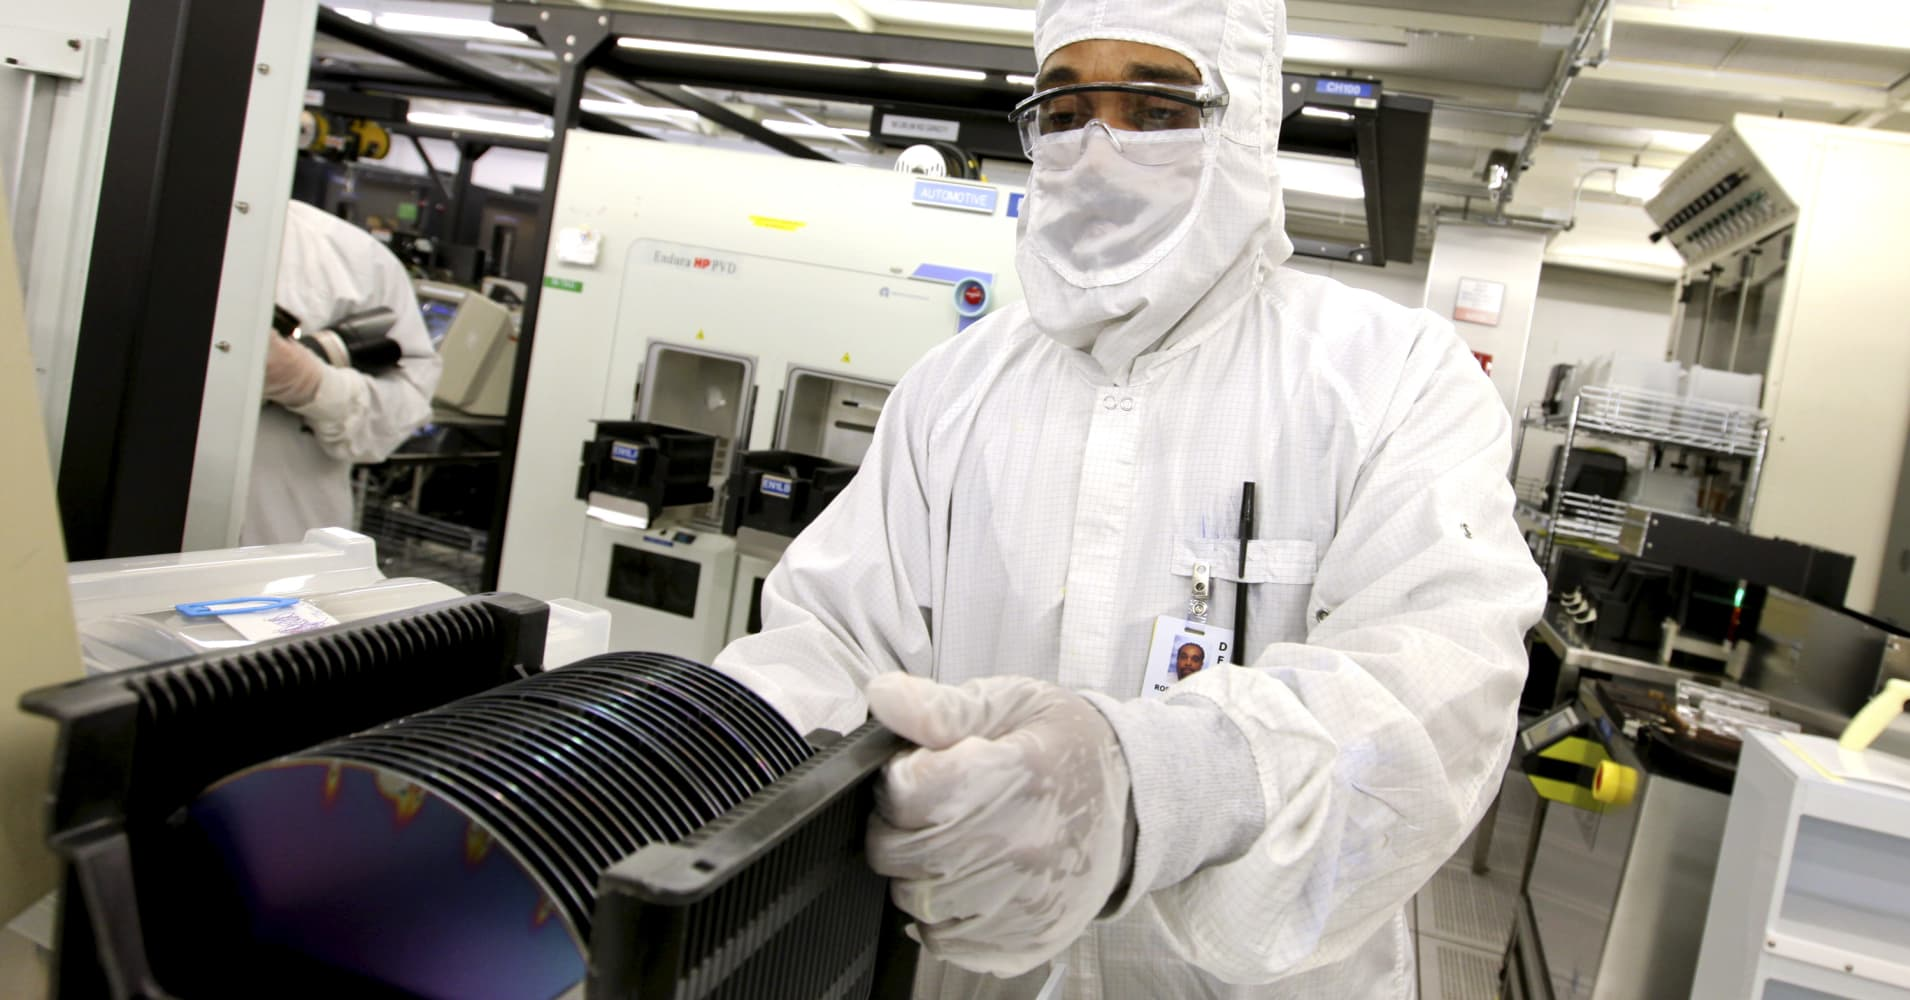 Chipmakers' lousy first-quarter earnings could threaten sector's strong stock market gains